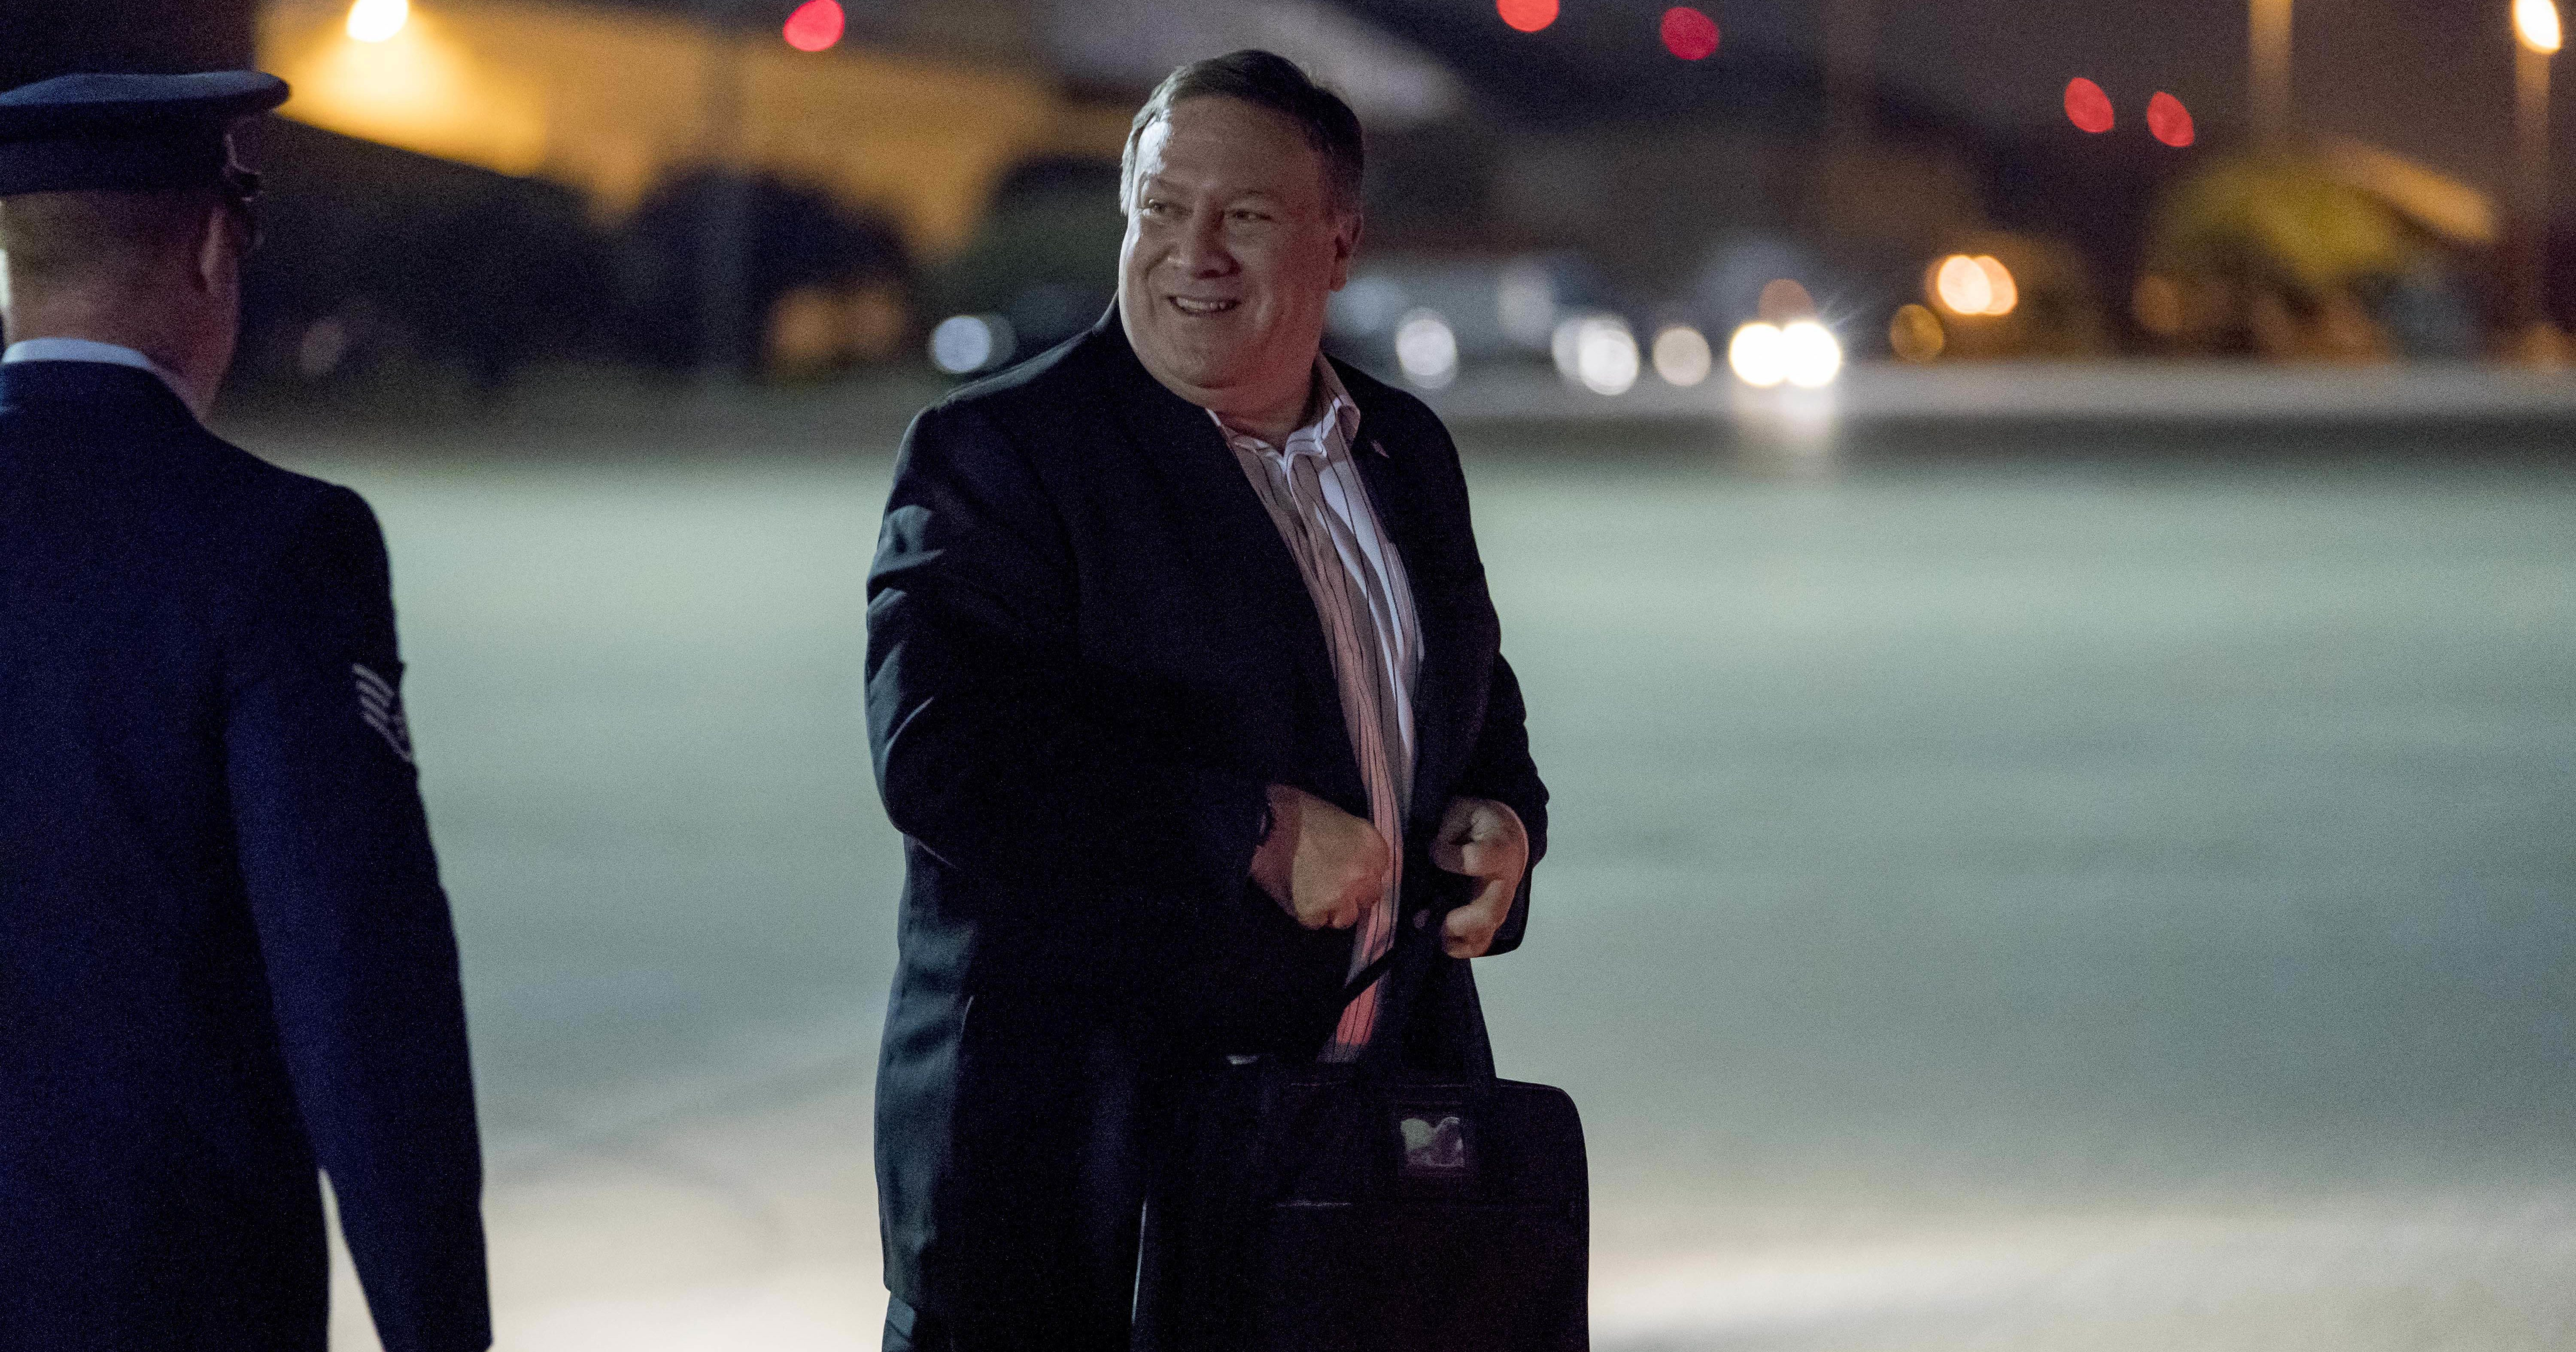 U.S. Secretary of State Mike Pompeo boards his plane at Andrews Air Force Base, Md., Thursday, July 5, 2018, to travel to Anchorage, Alaska on his way to Pyongyang, North Korea. Pompeo begins a trip traveling to North Korea, Japan, Vietnam, Abu Dhabi, and Brussels.